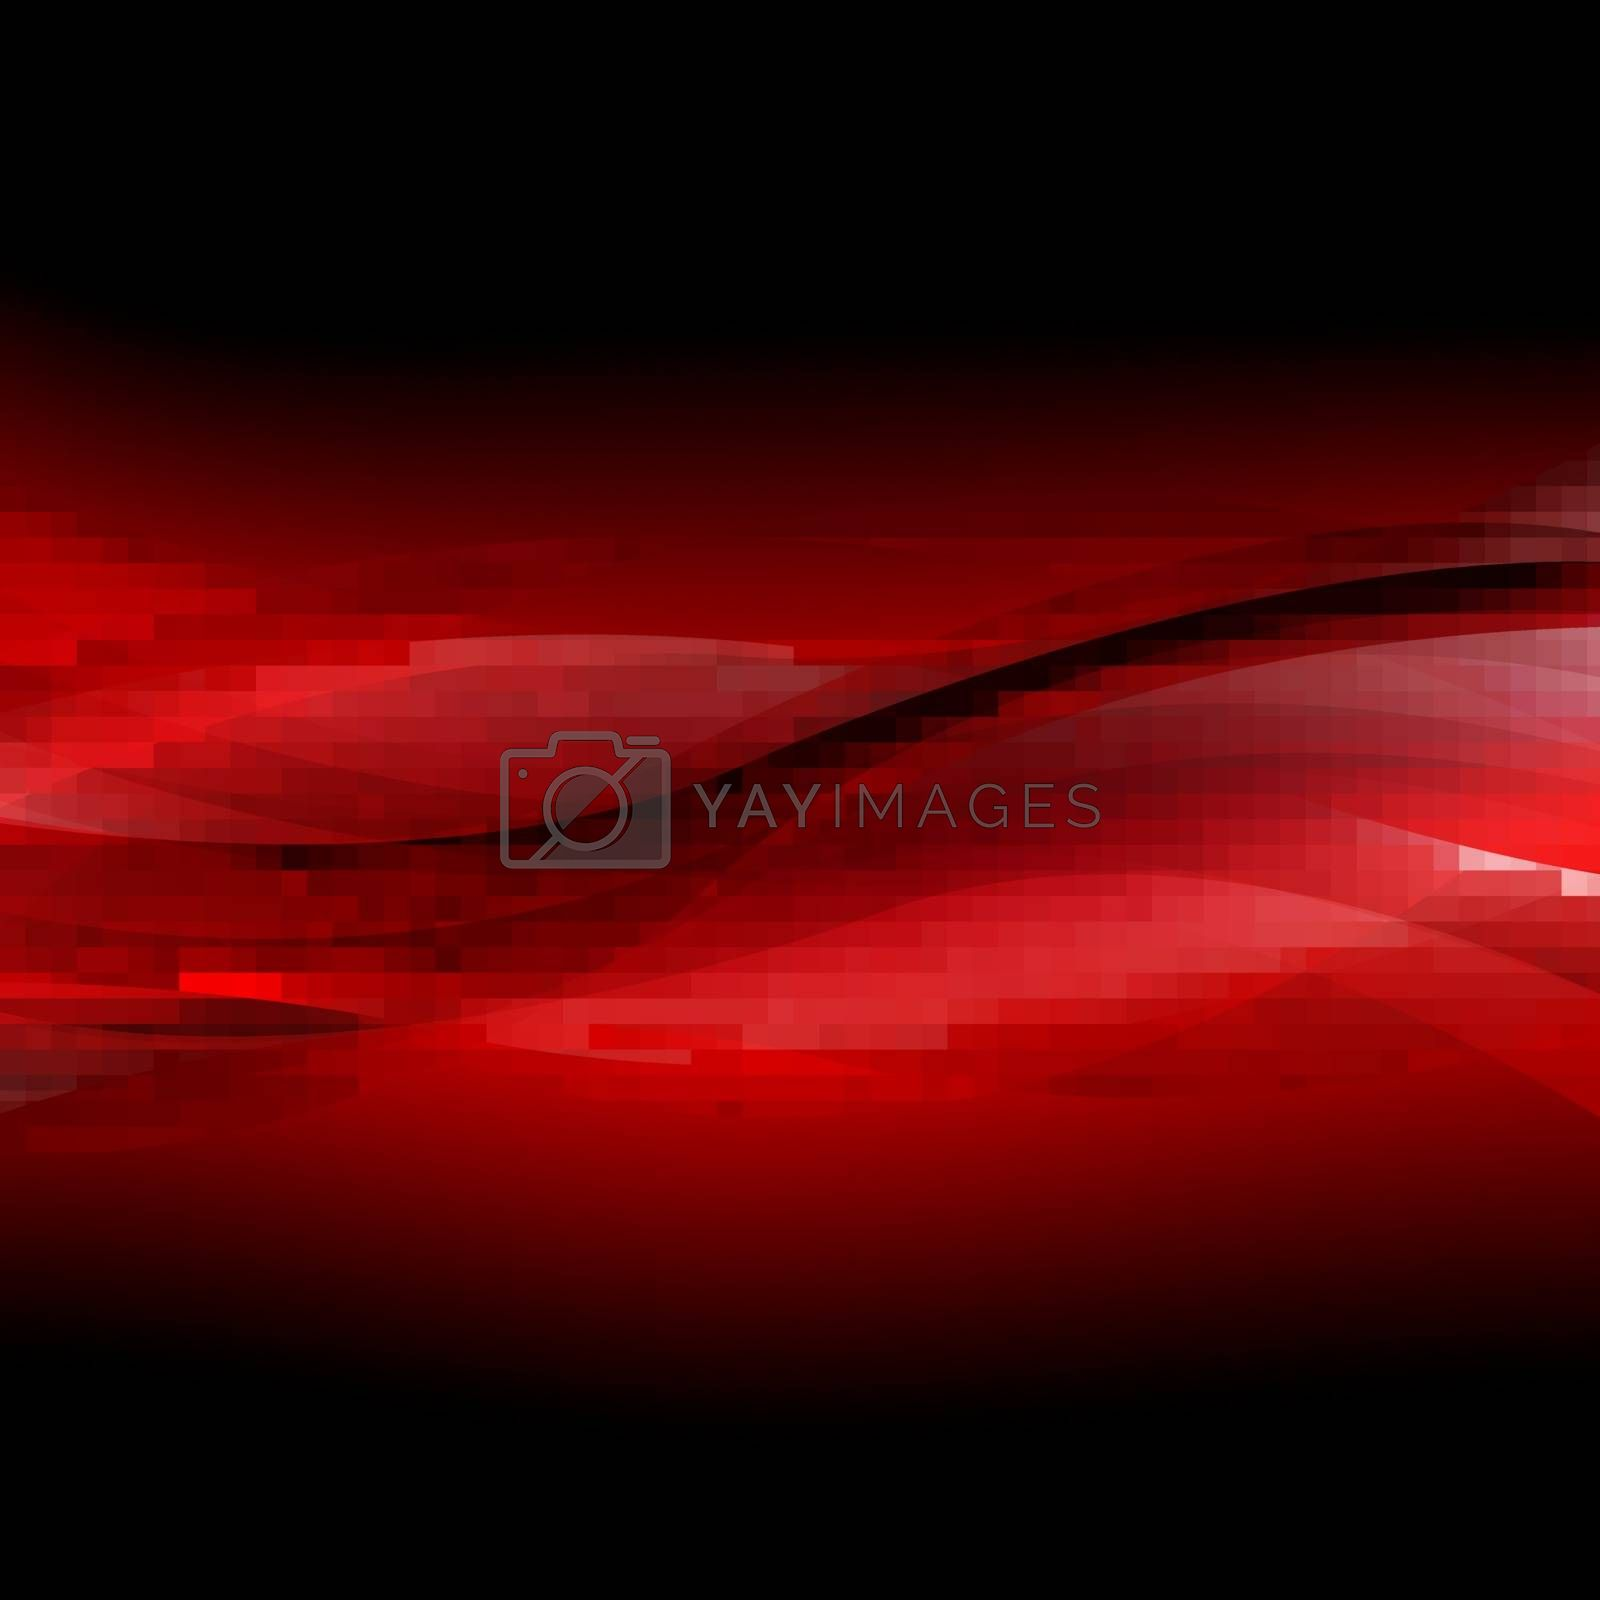 Red And Black Line With Gradient Mesh, Vector Illustration